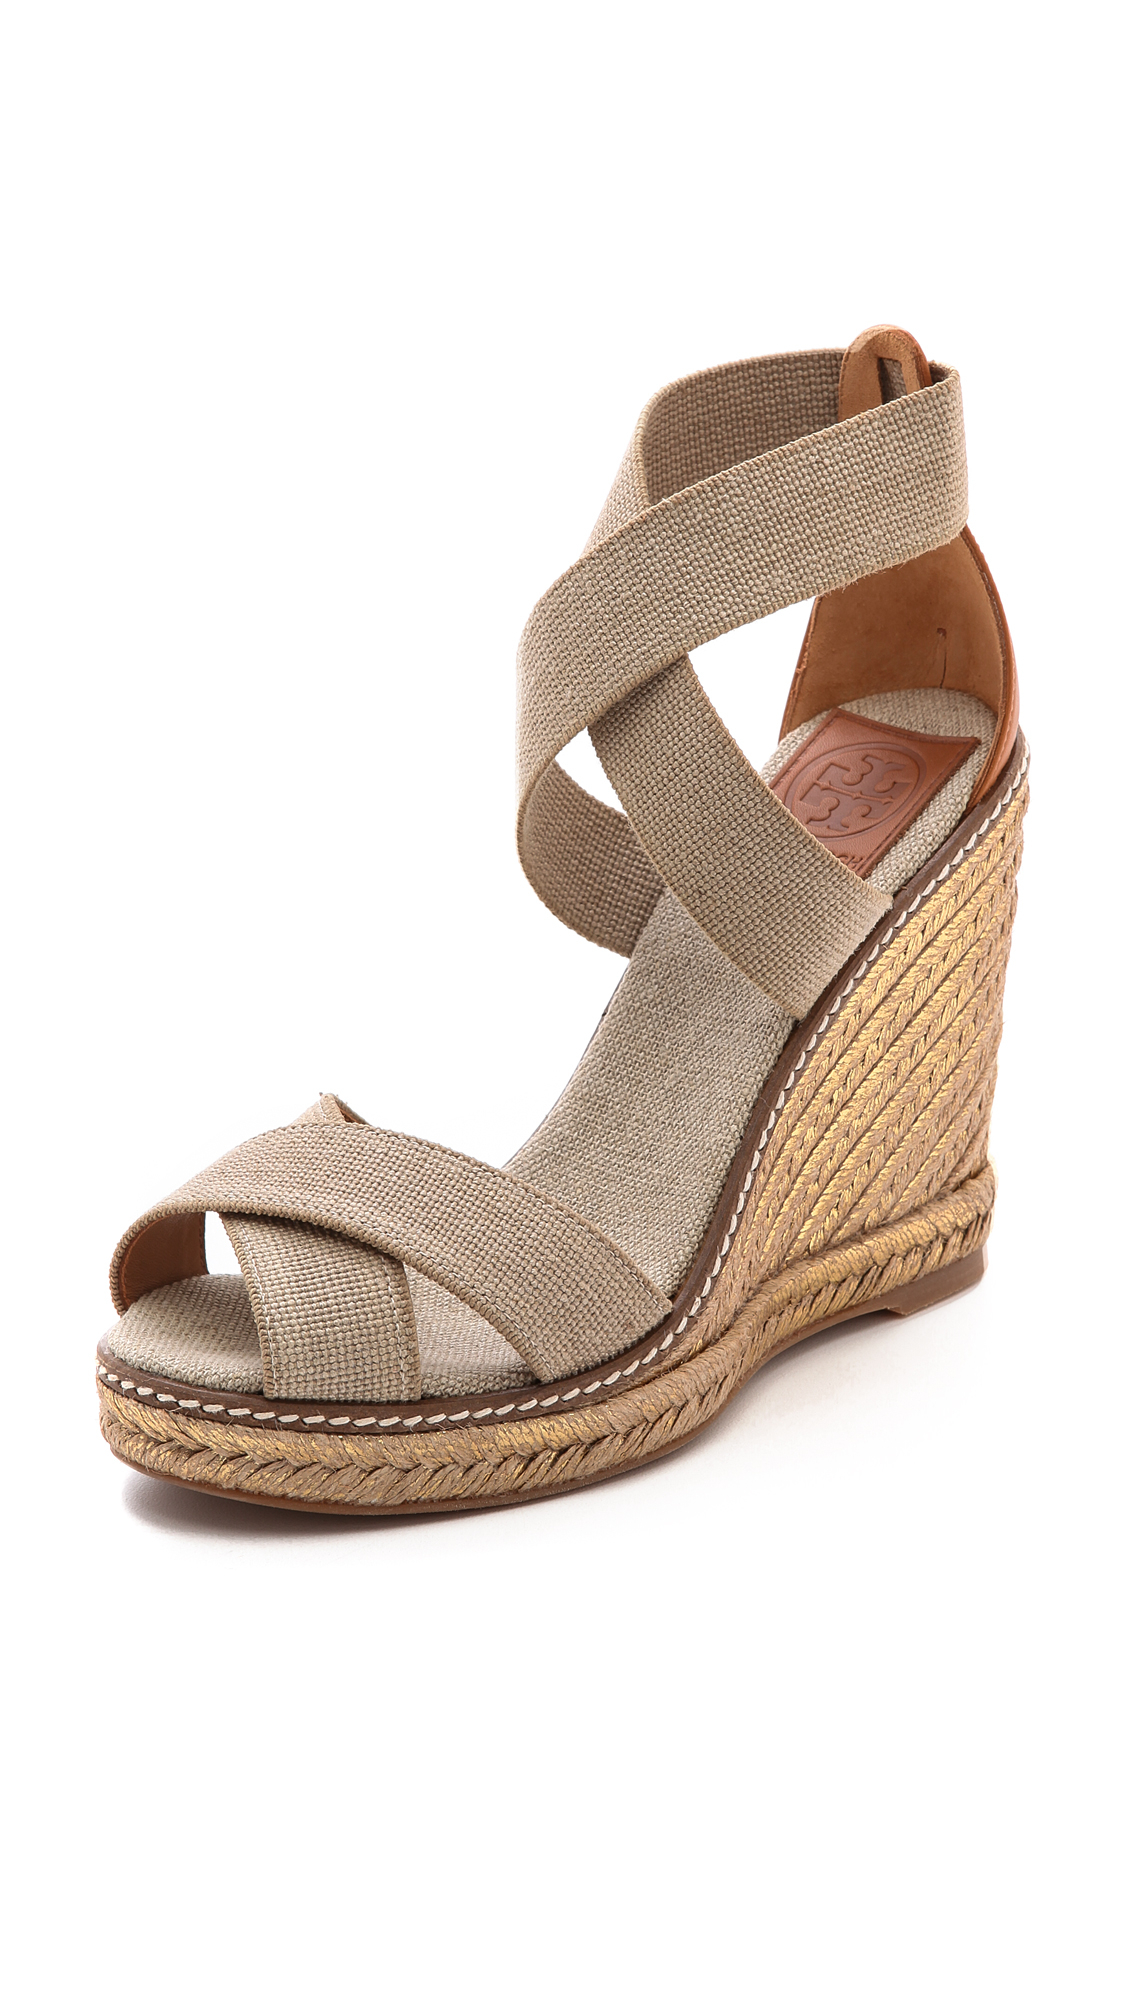 Tory Burch Adonis Espadrille Wedges Khakikhakigold In